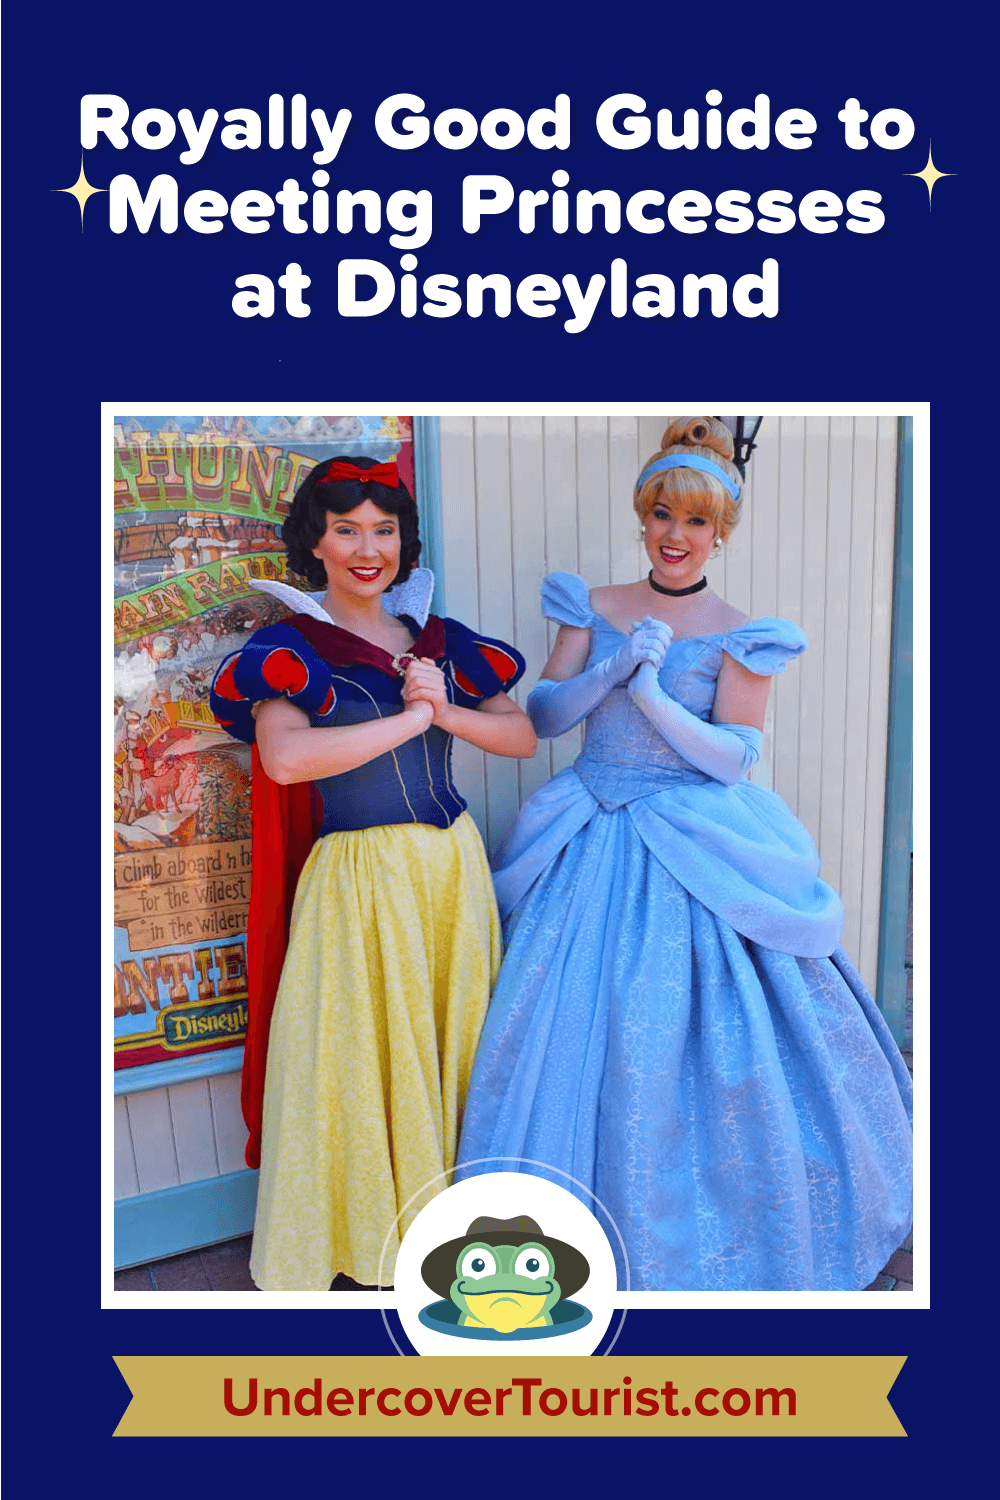 Our Royally Good Guide to Meeting Princesses at Disneyland - Pinterest